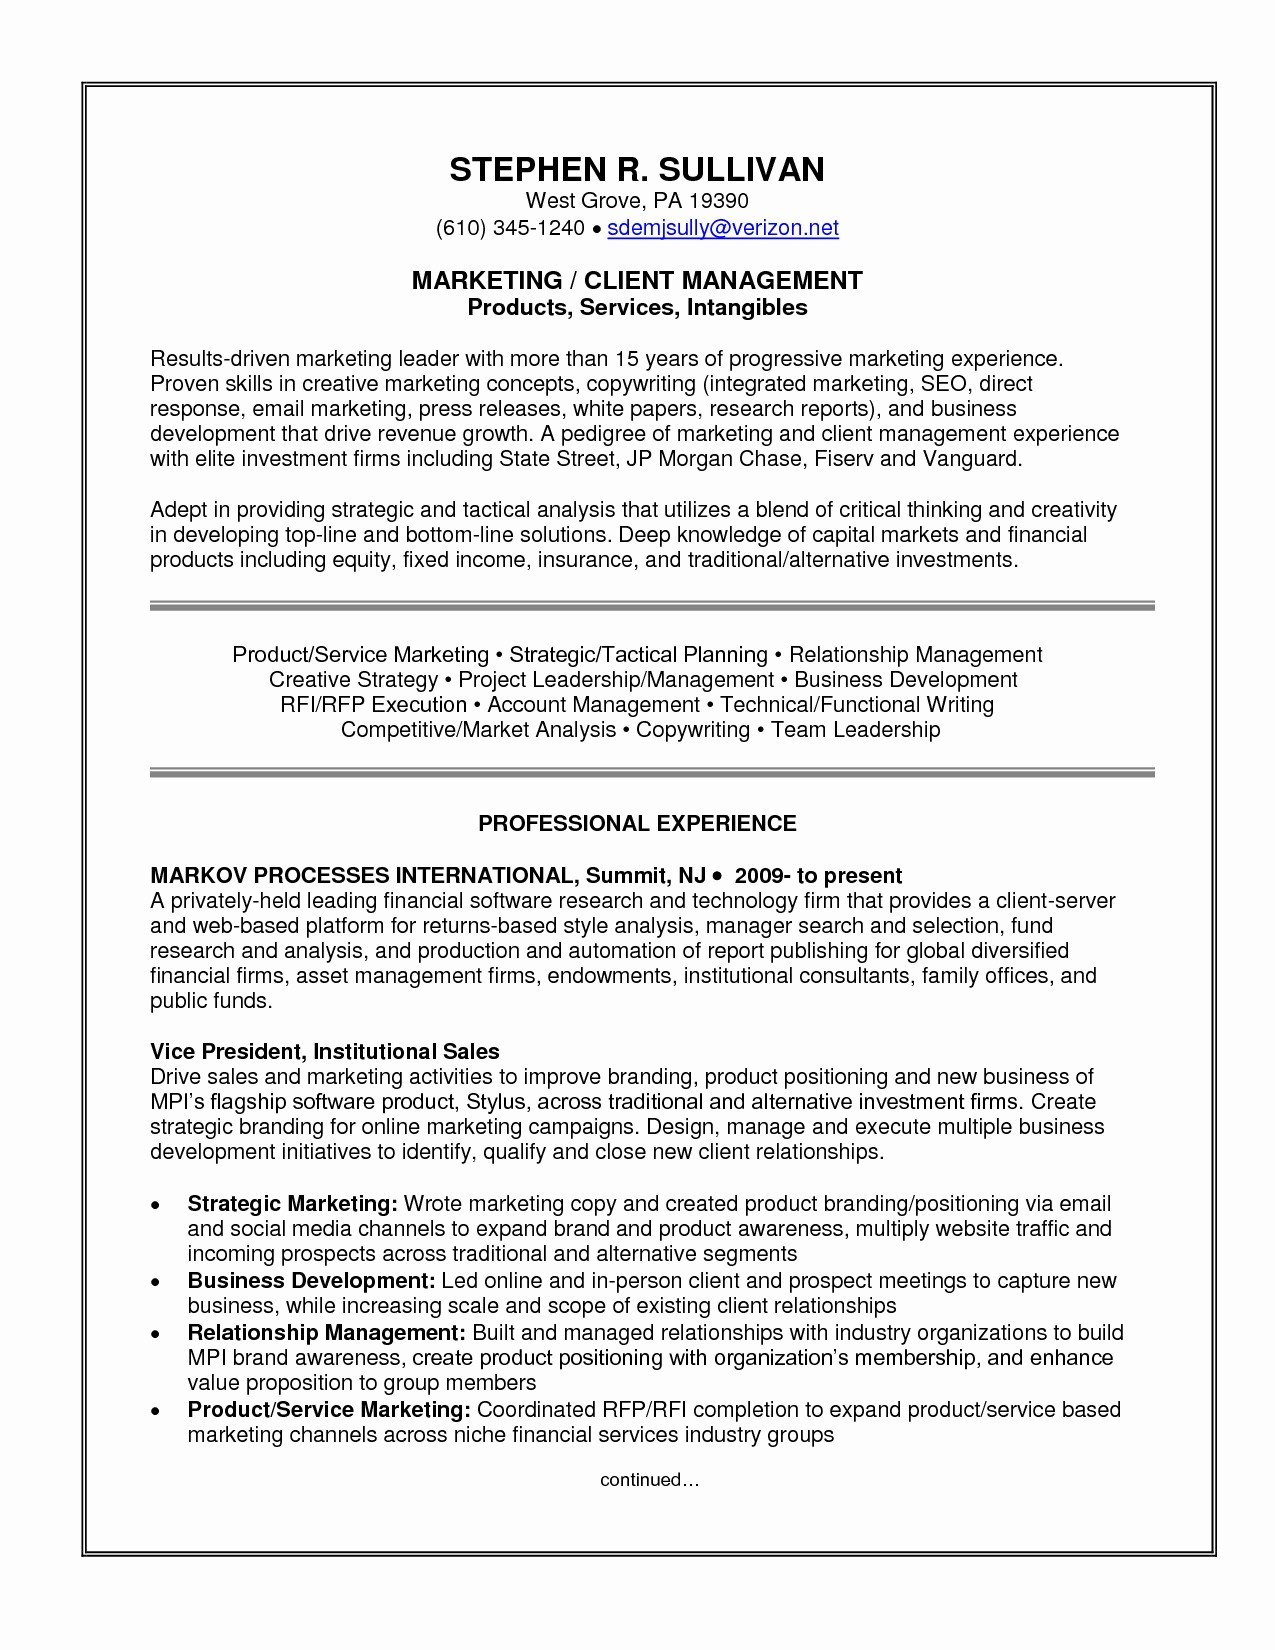 Supervisor Resume Samples - 21 Supervisor Resume Examples